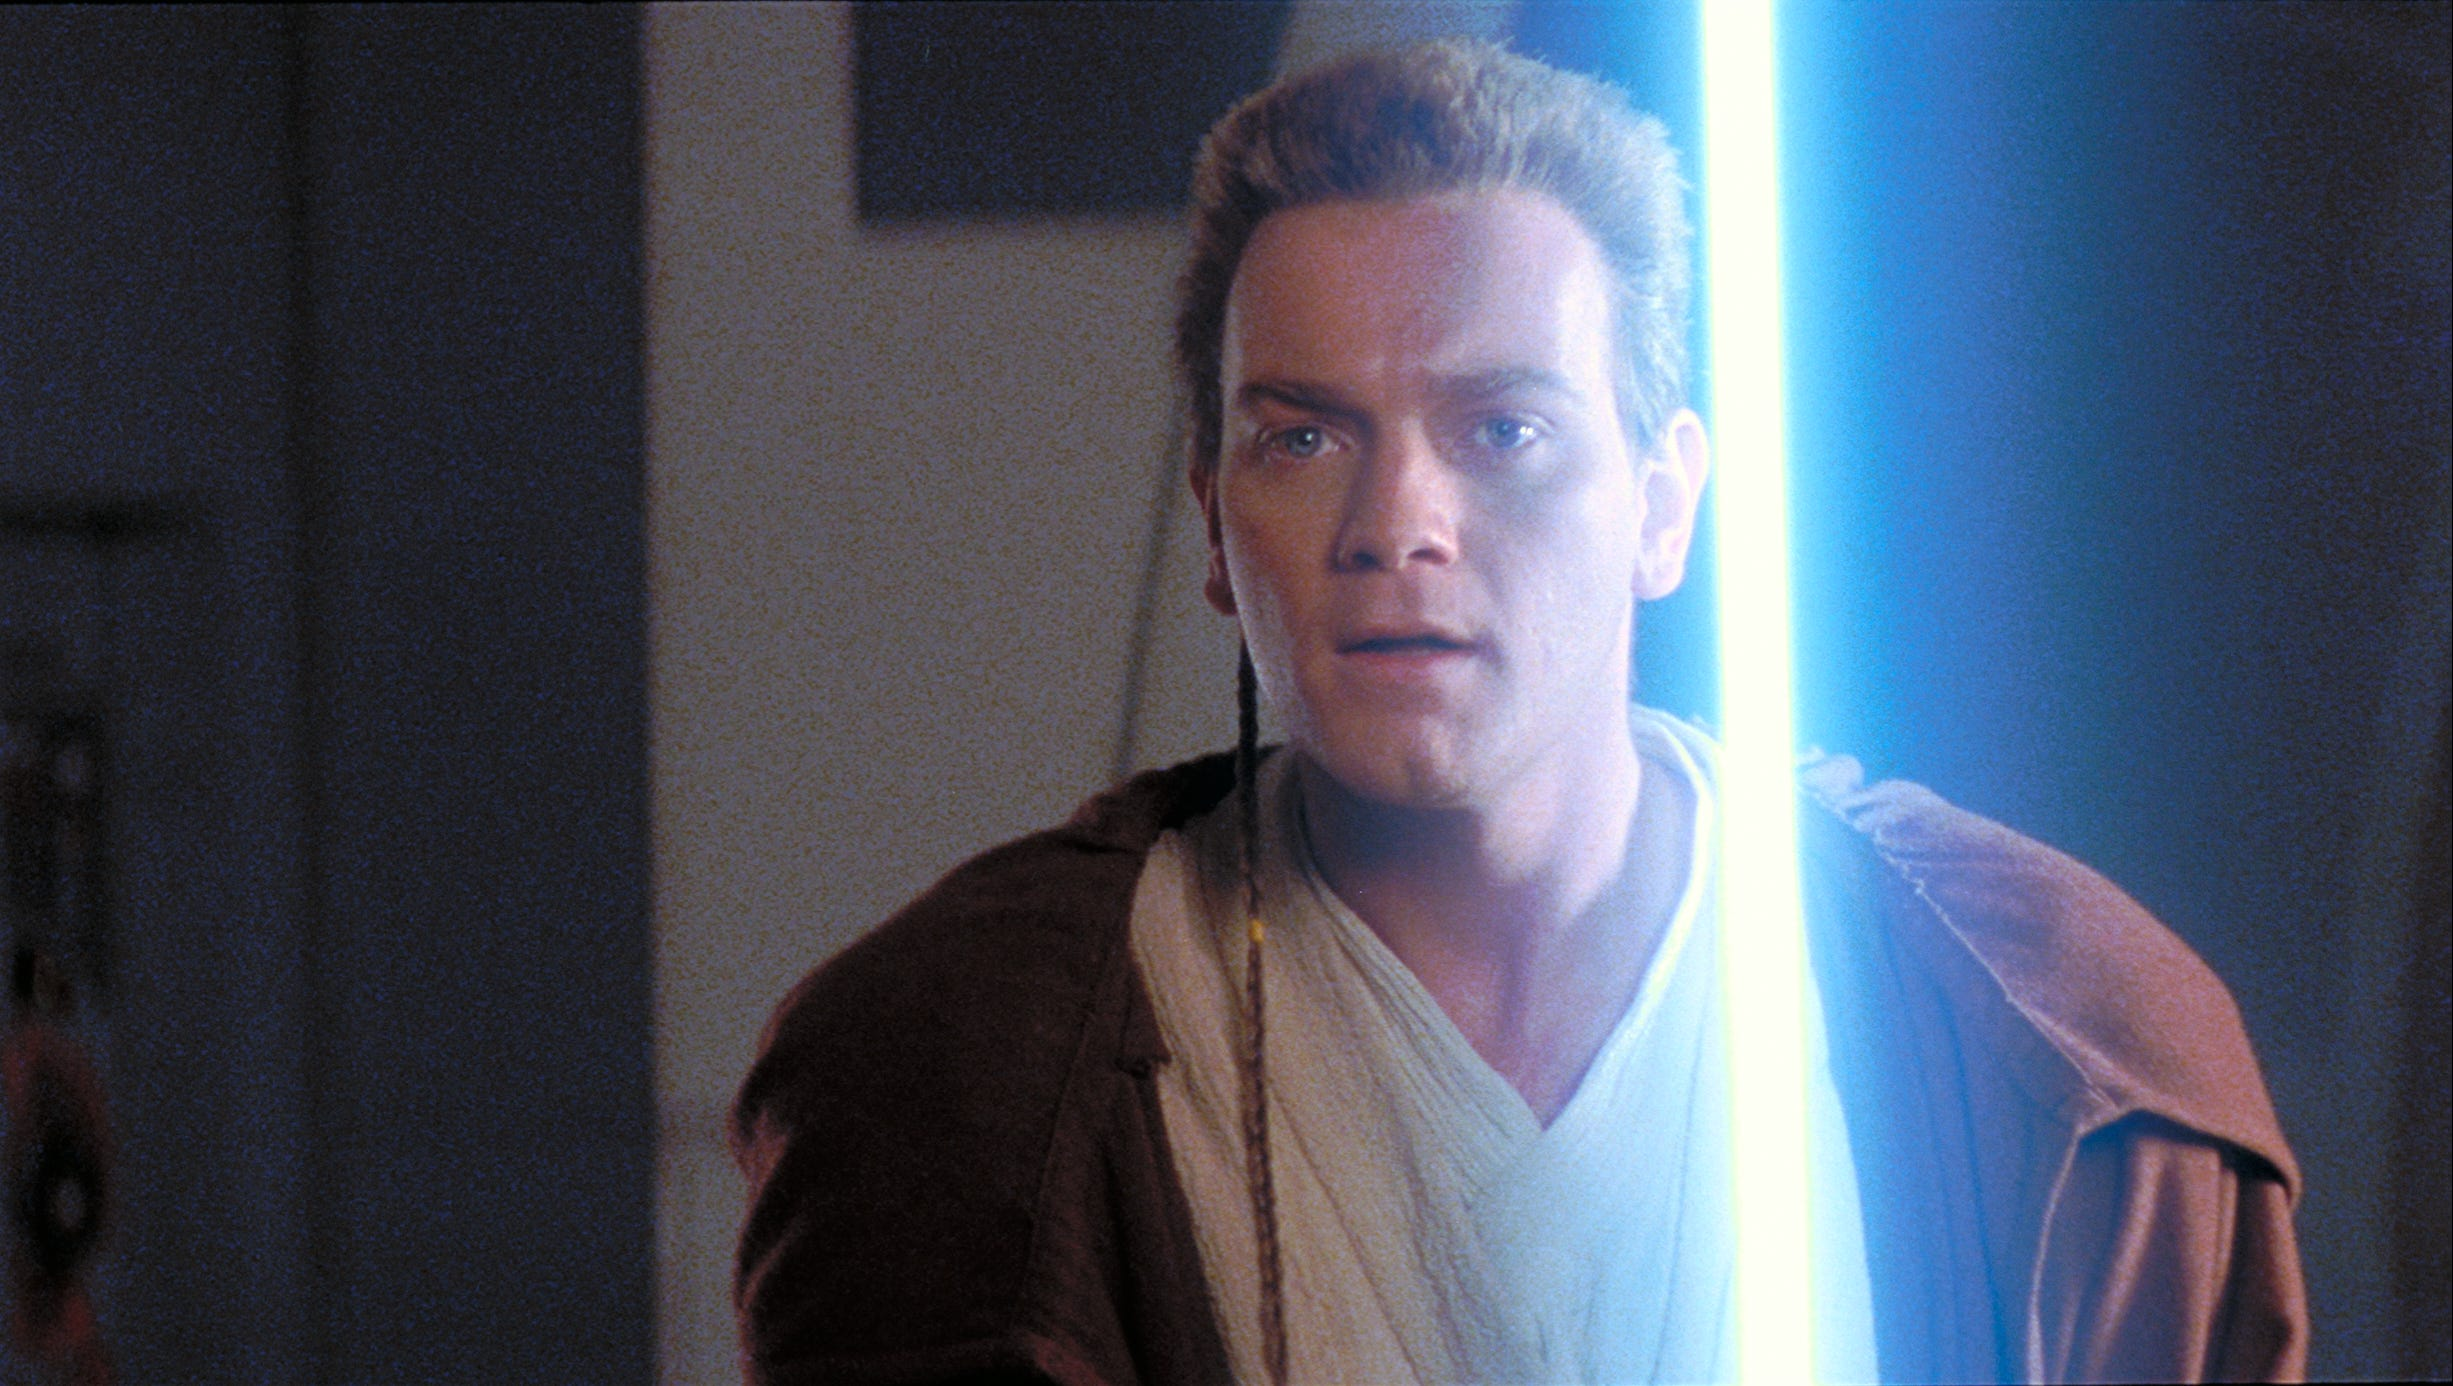 Star Wars At D23 Ewan Mcgregor Returns As Obi Wan Kenobi To Disney